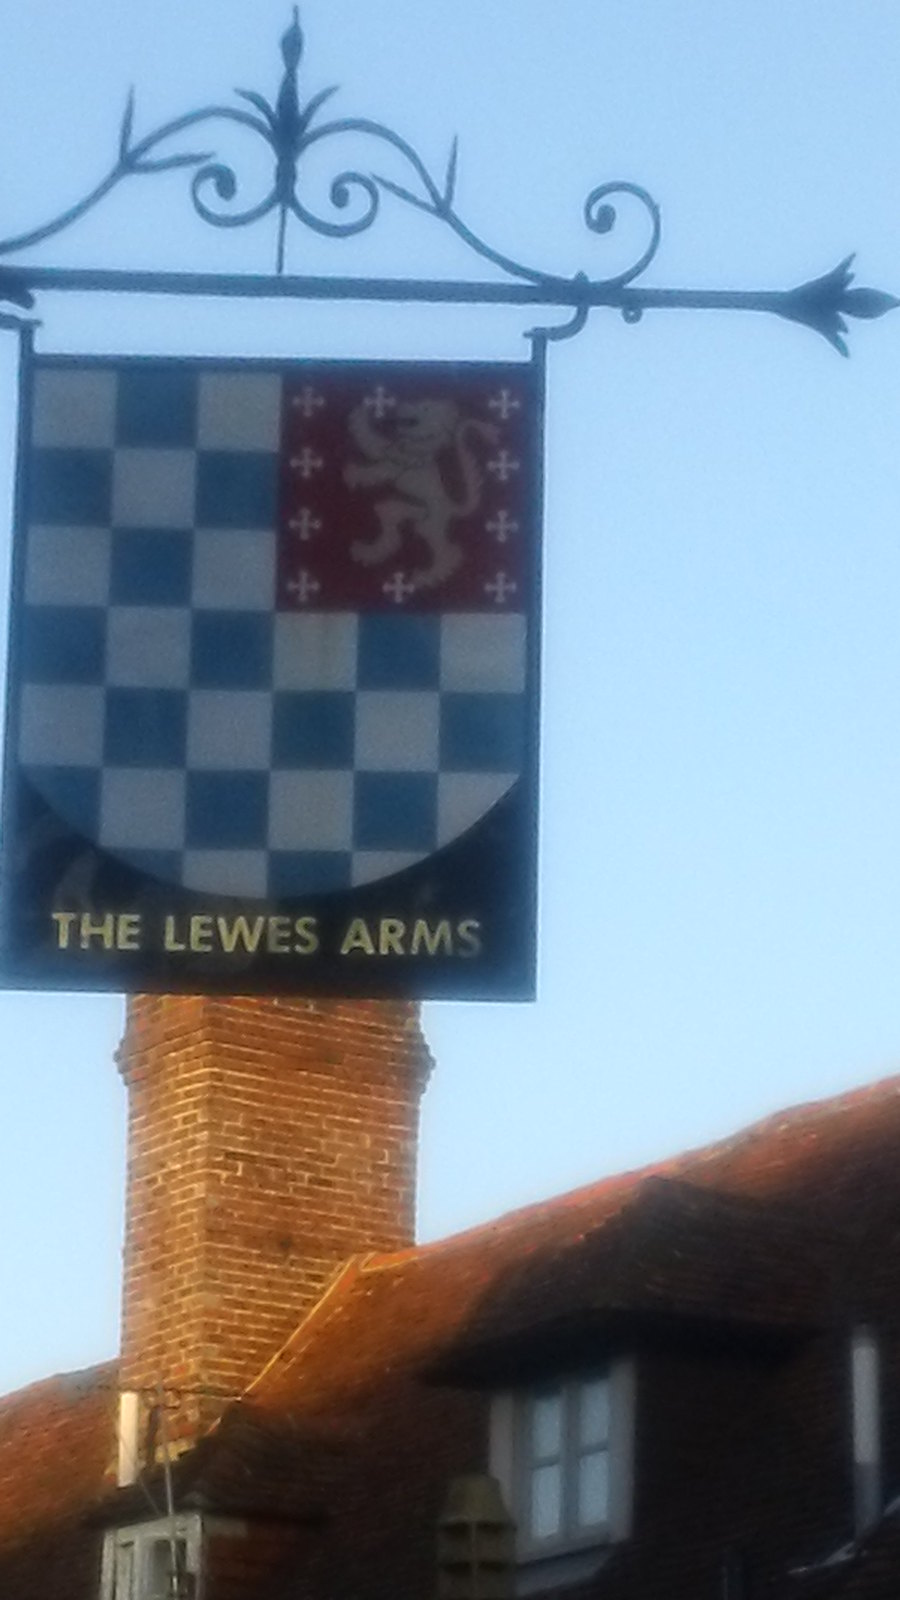 Best pub in Lewes? The Lewes Arms